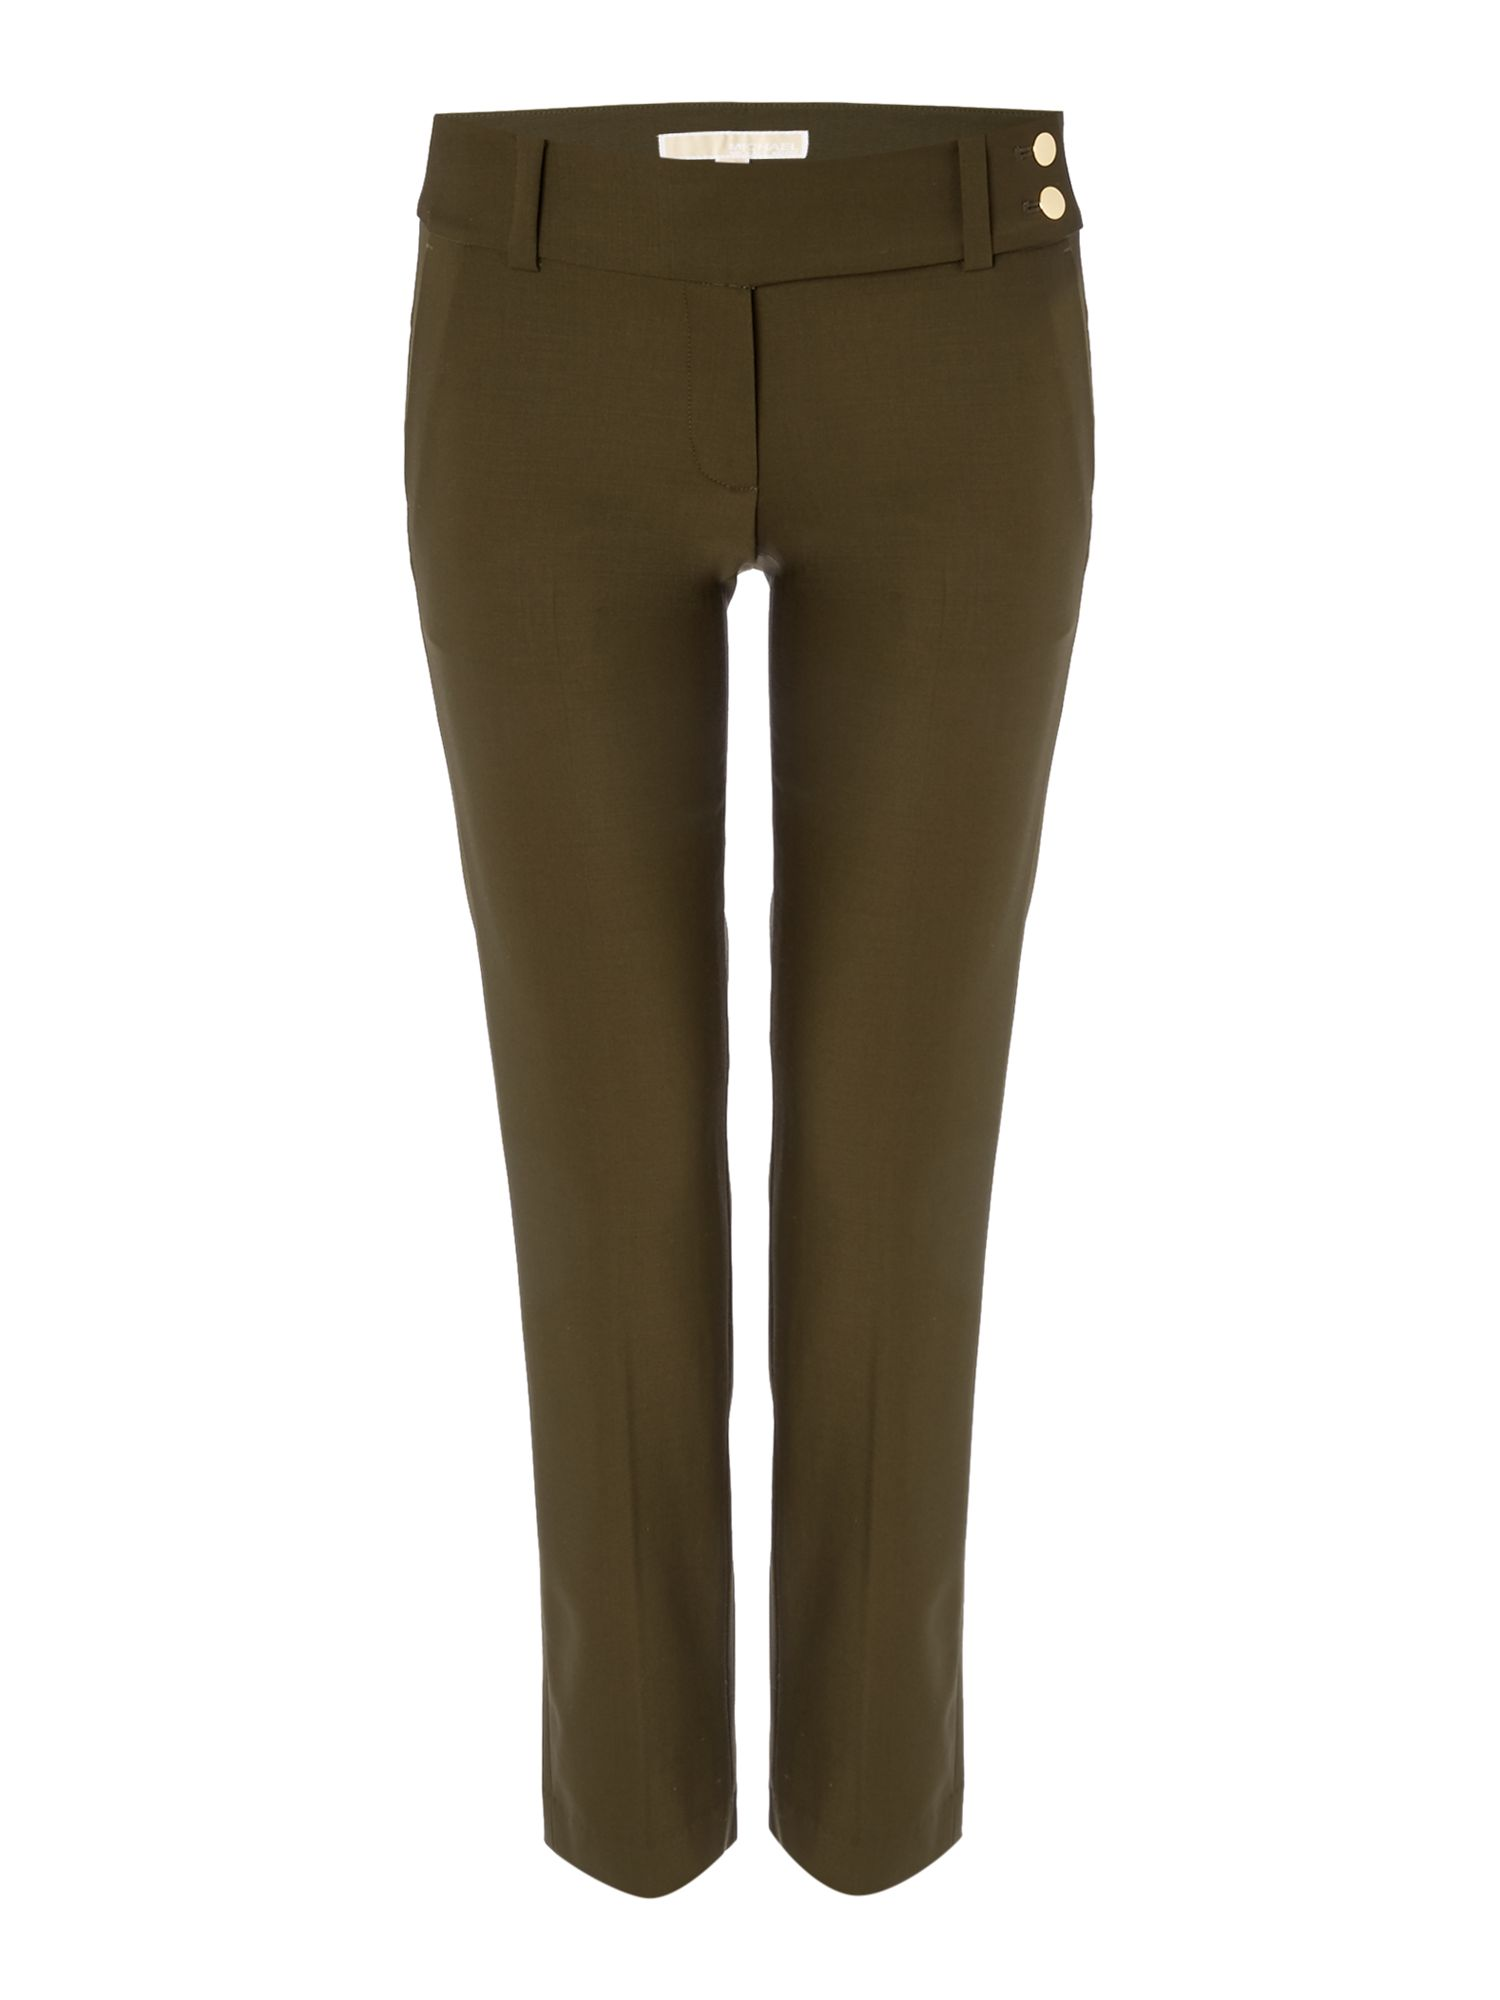 Michael Kors Cropped leg trousers, Dark Green